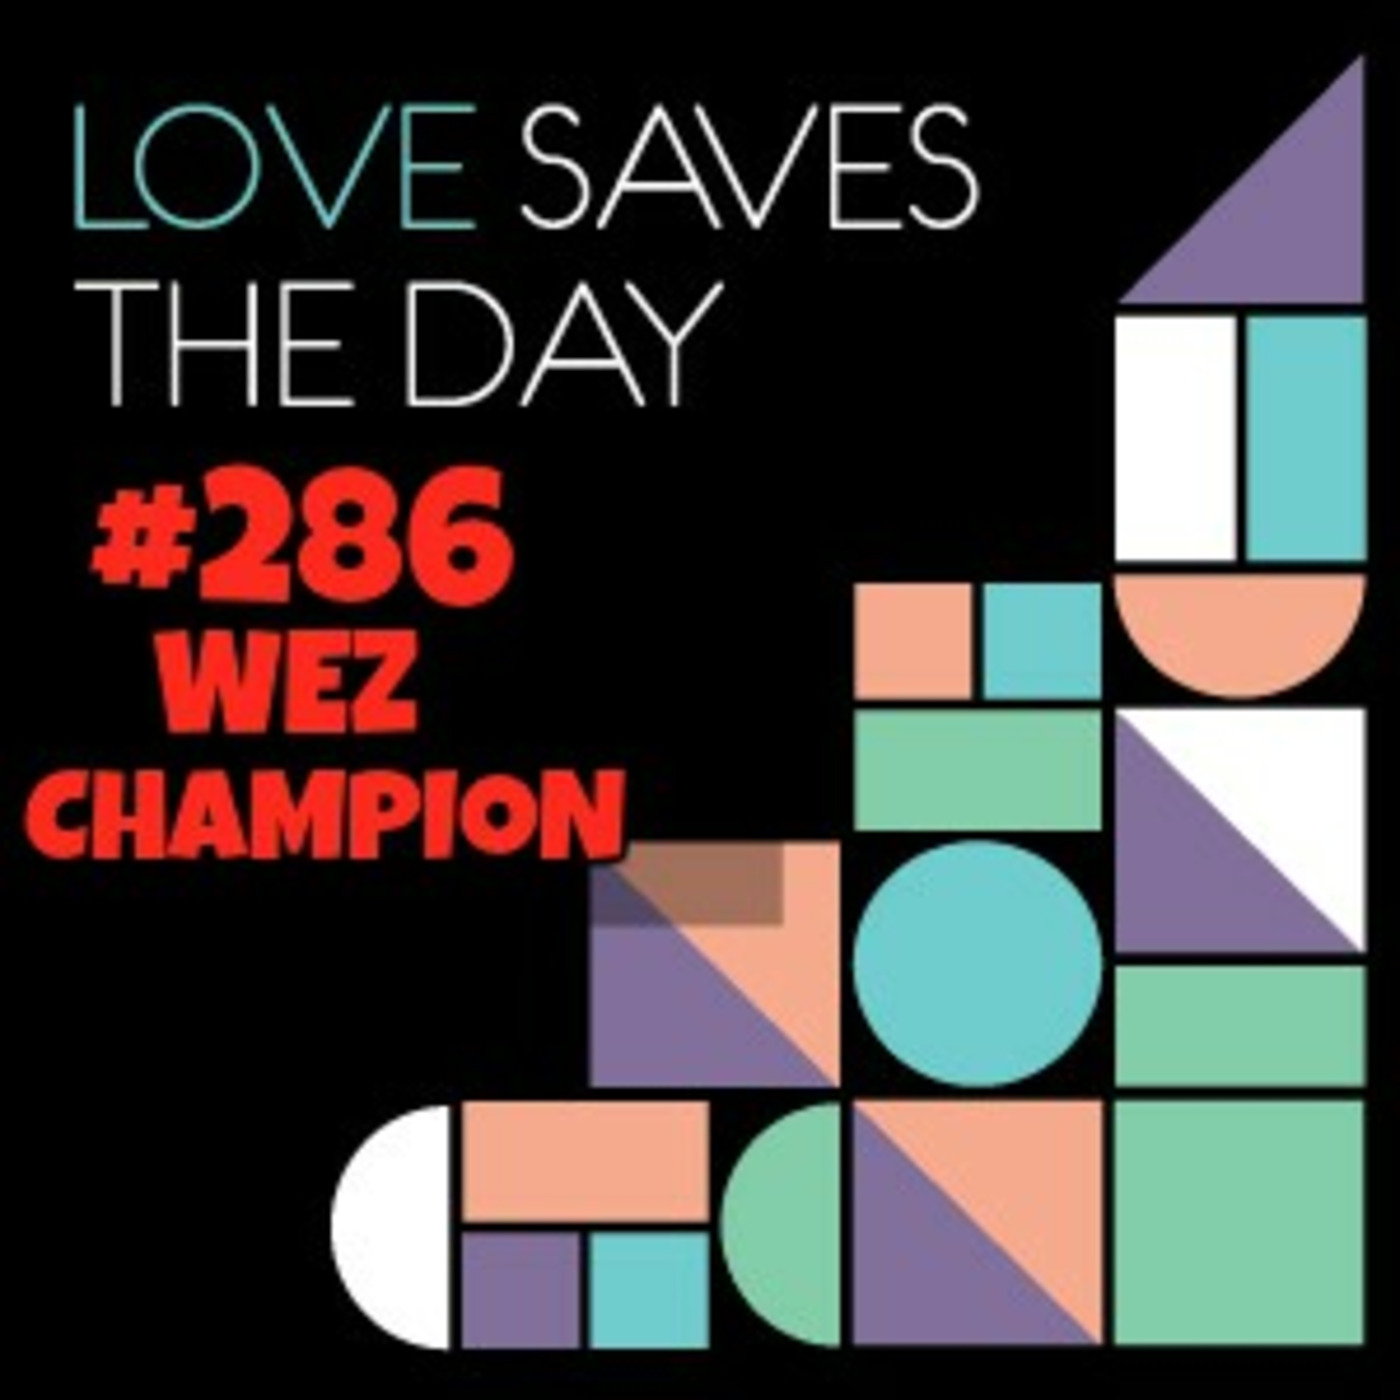 LOVESAVESTHEDAY#286 WEZ CHAMPION Wez Champion's Podcast